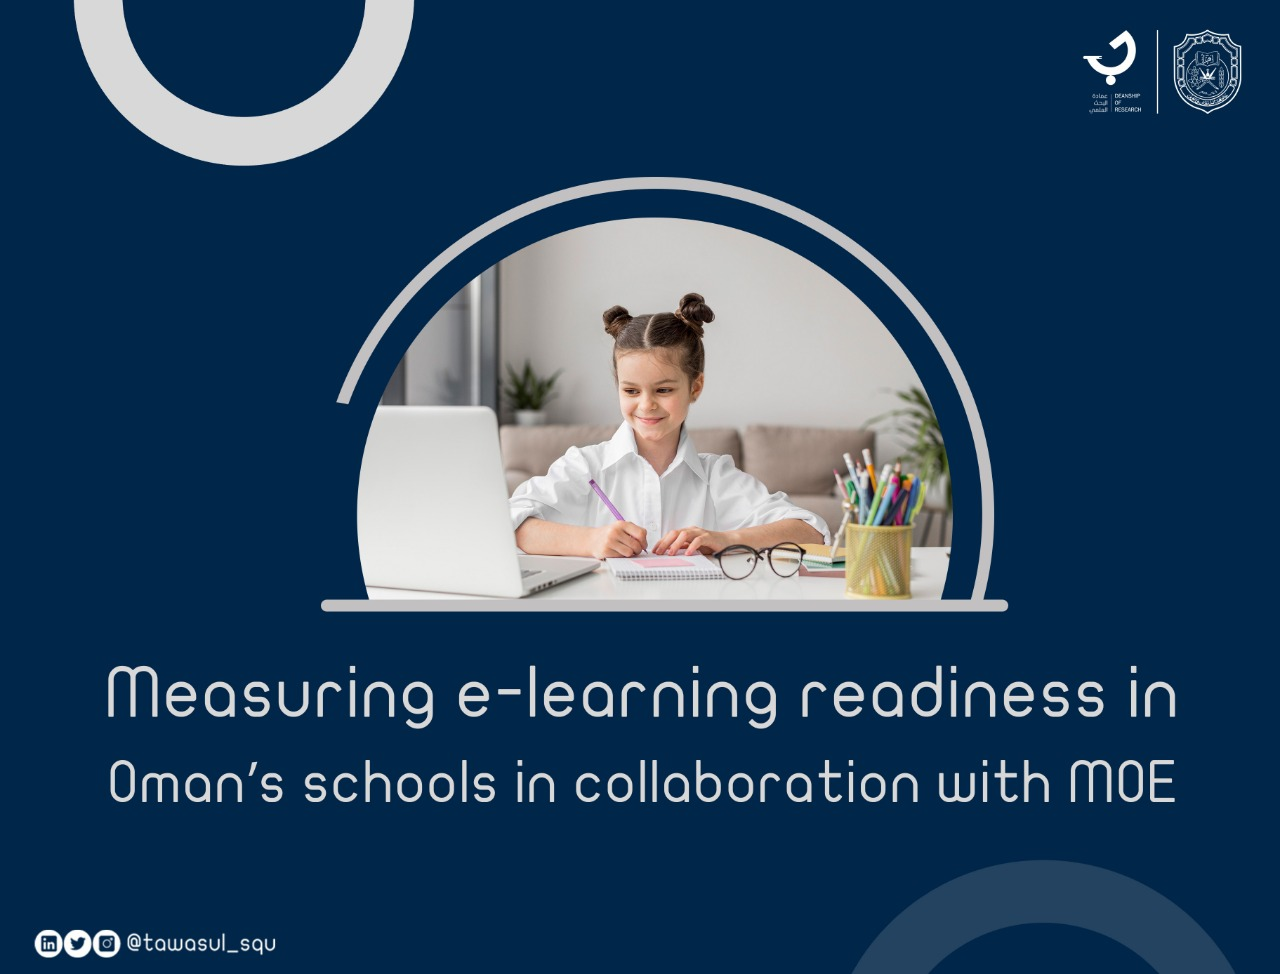 Measuring e-learning readiness in Oman's schools in collaboration with MOE